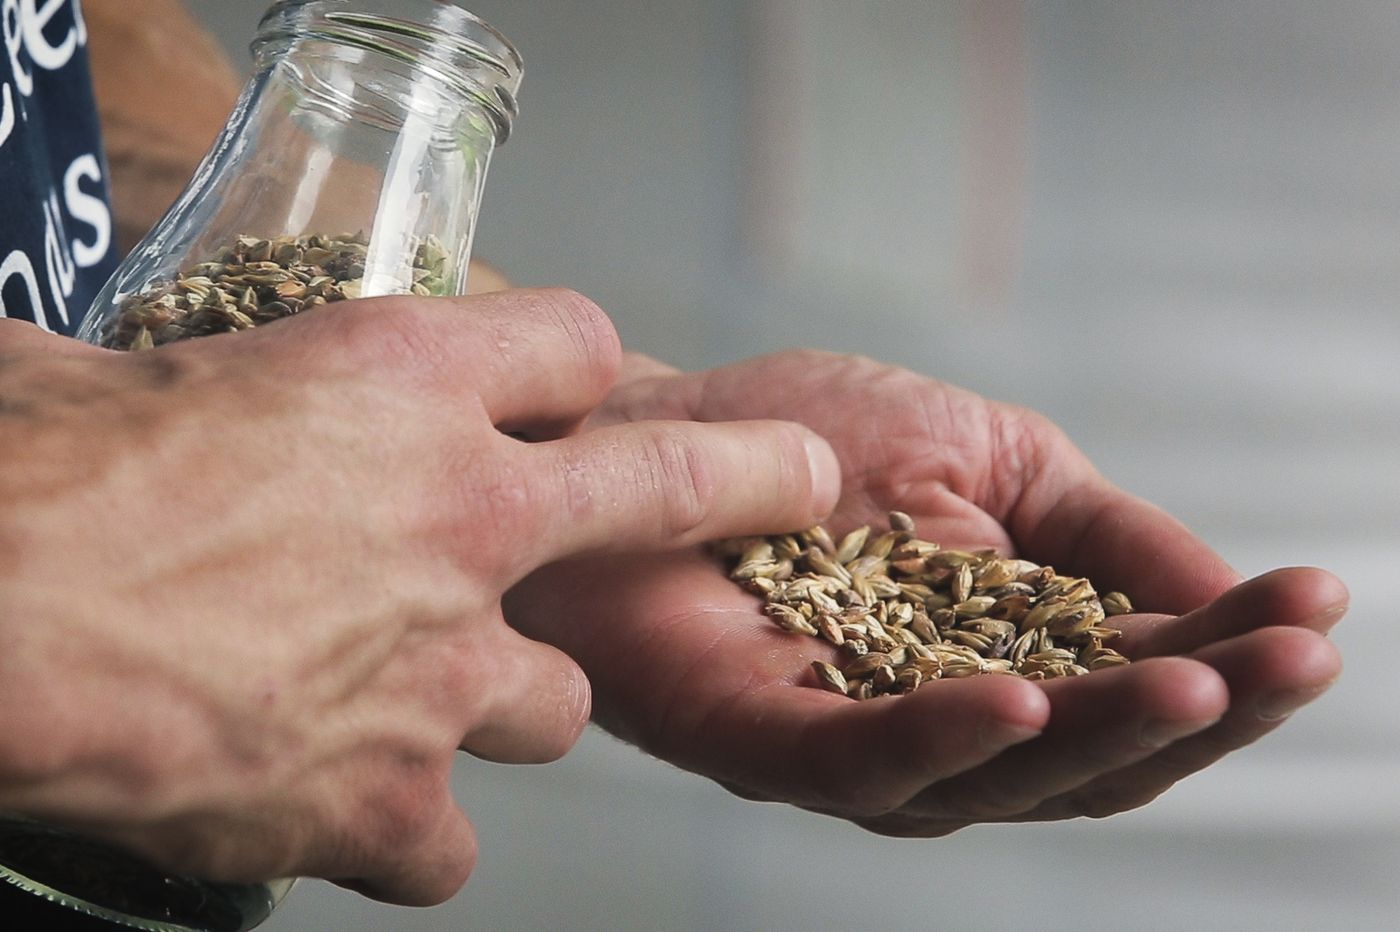 After a rough growing season, region's farmers, millers will gather to talk grain